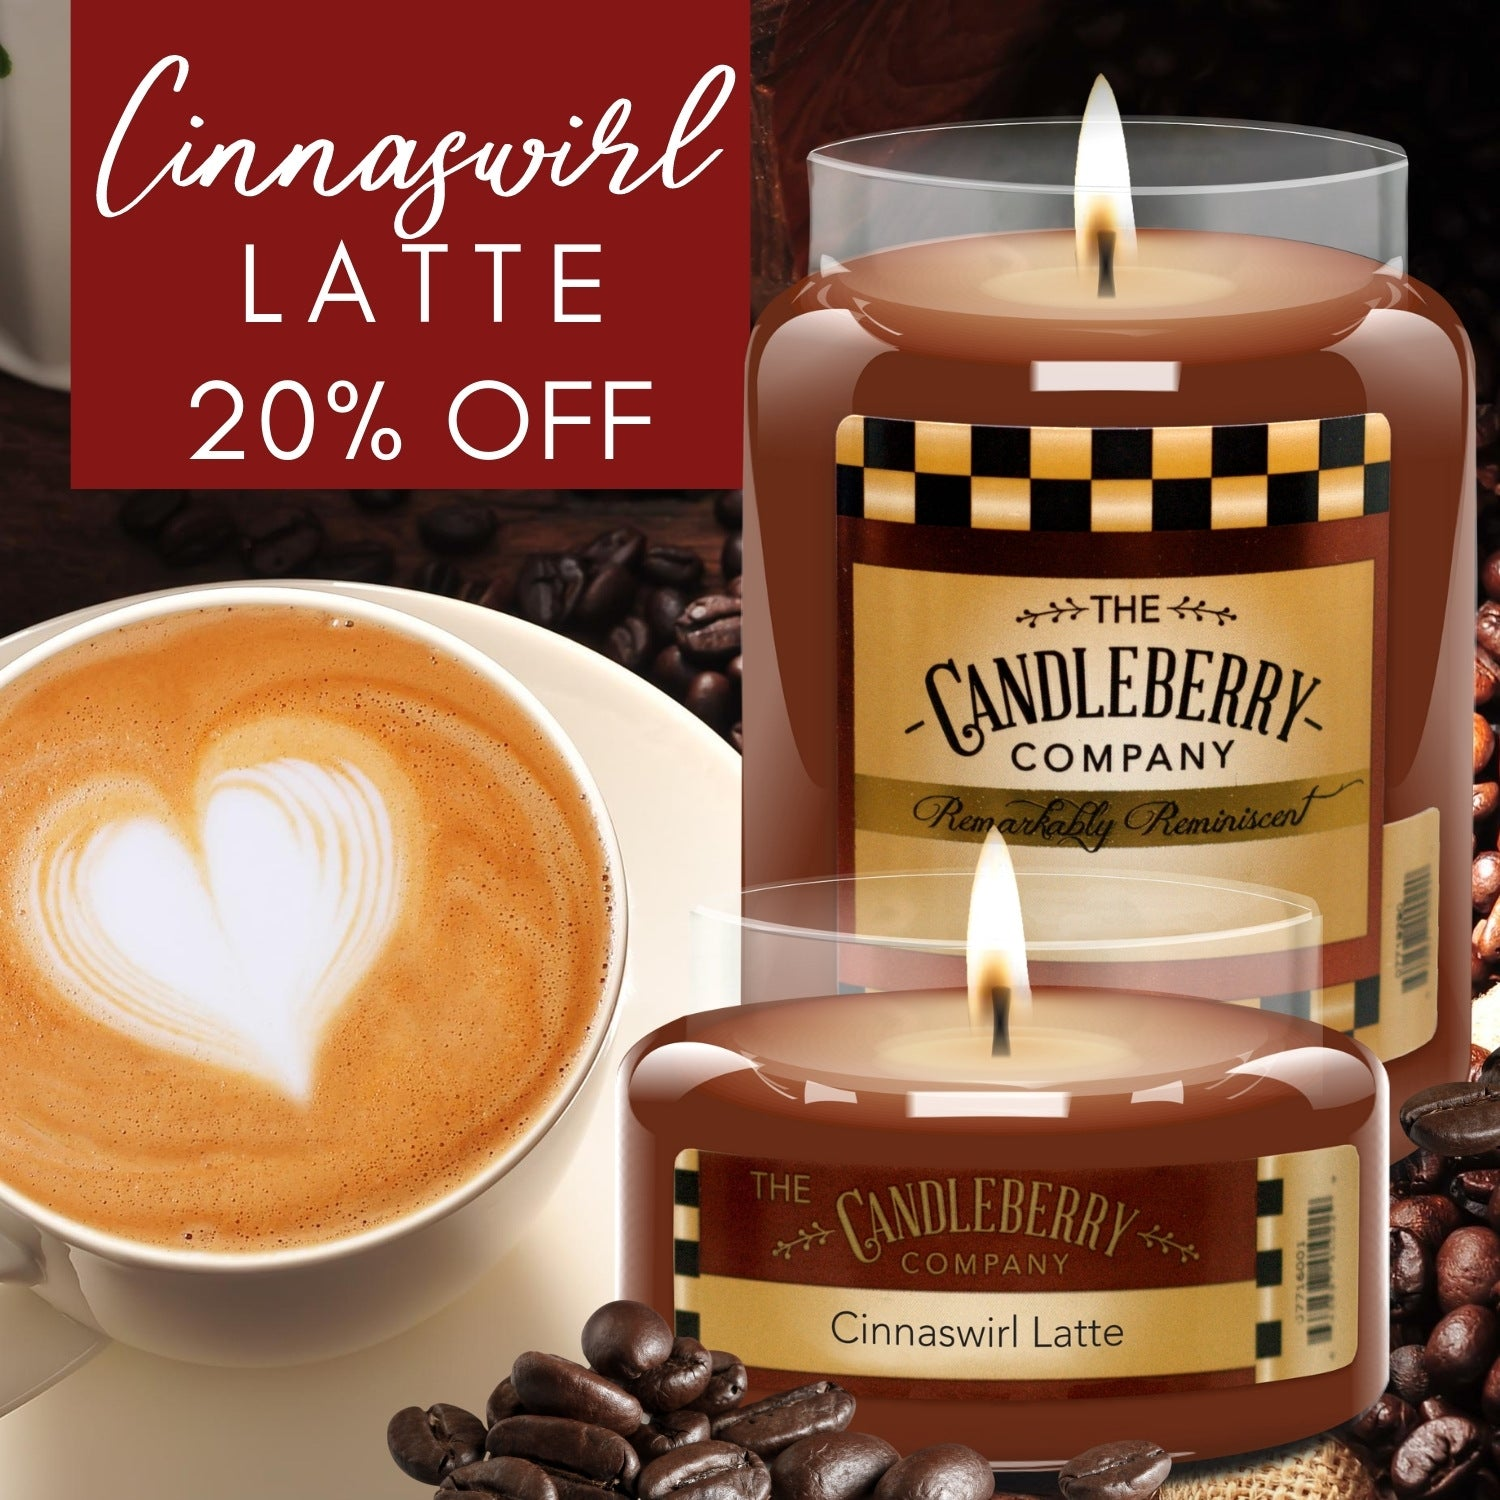 candleberry cinnamon coffee cafe cinnaswirl latte sale 20 percent off regular price we scent houses best seller fall 2020